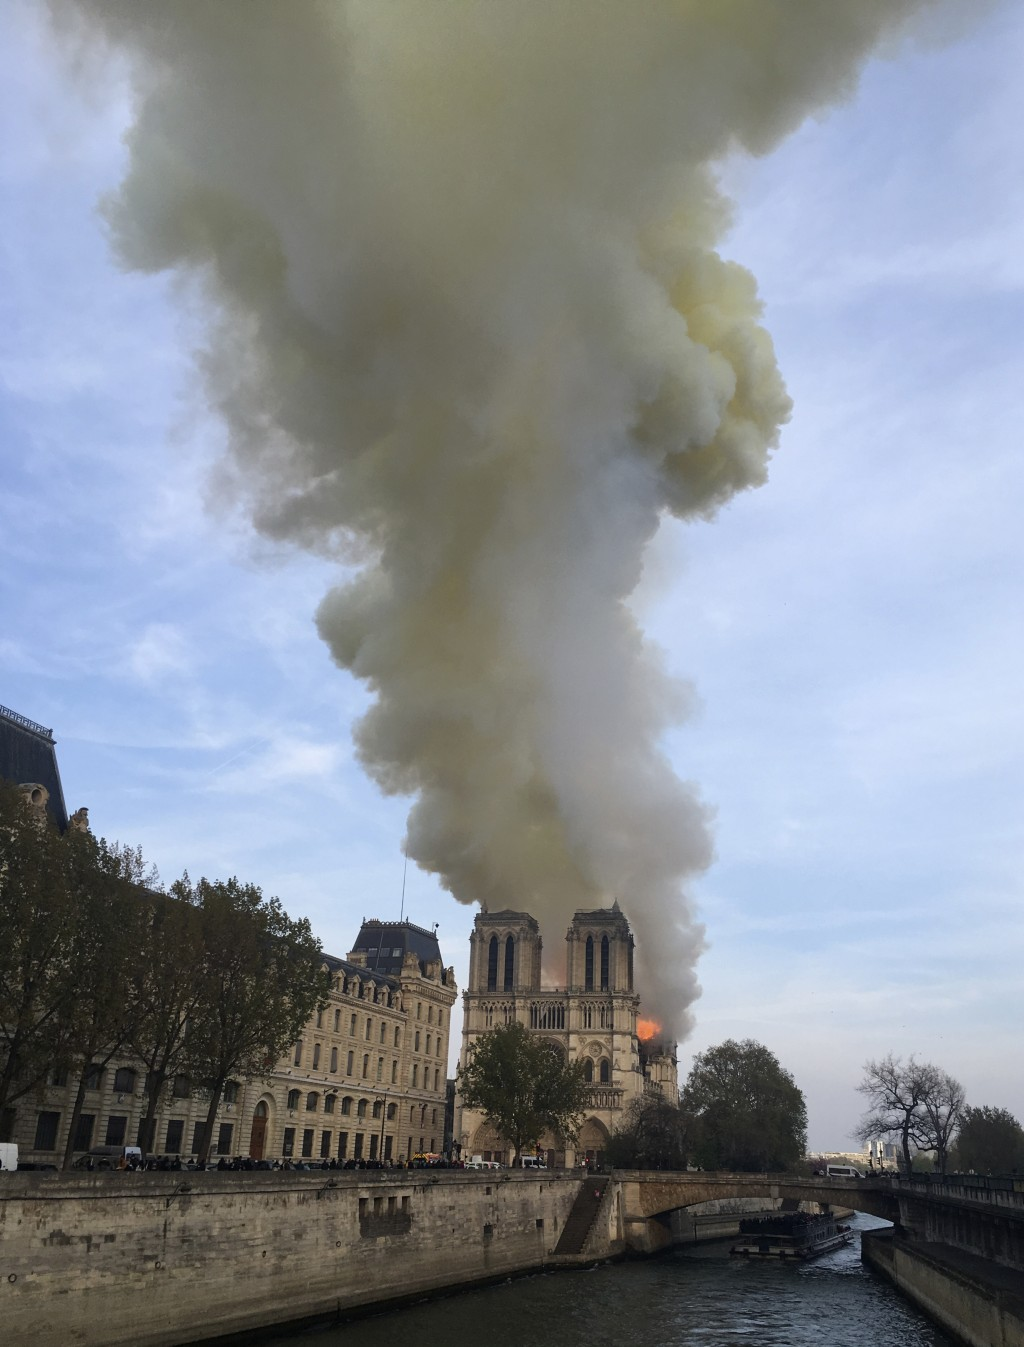 Notre Dame cathedral is burning in Paris, Monday, April 15, 2019. Massive plumes of yellow brown smoke is filling the air above Notre Dame Cathedral a